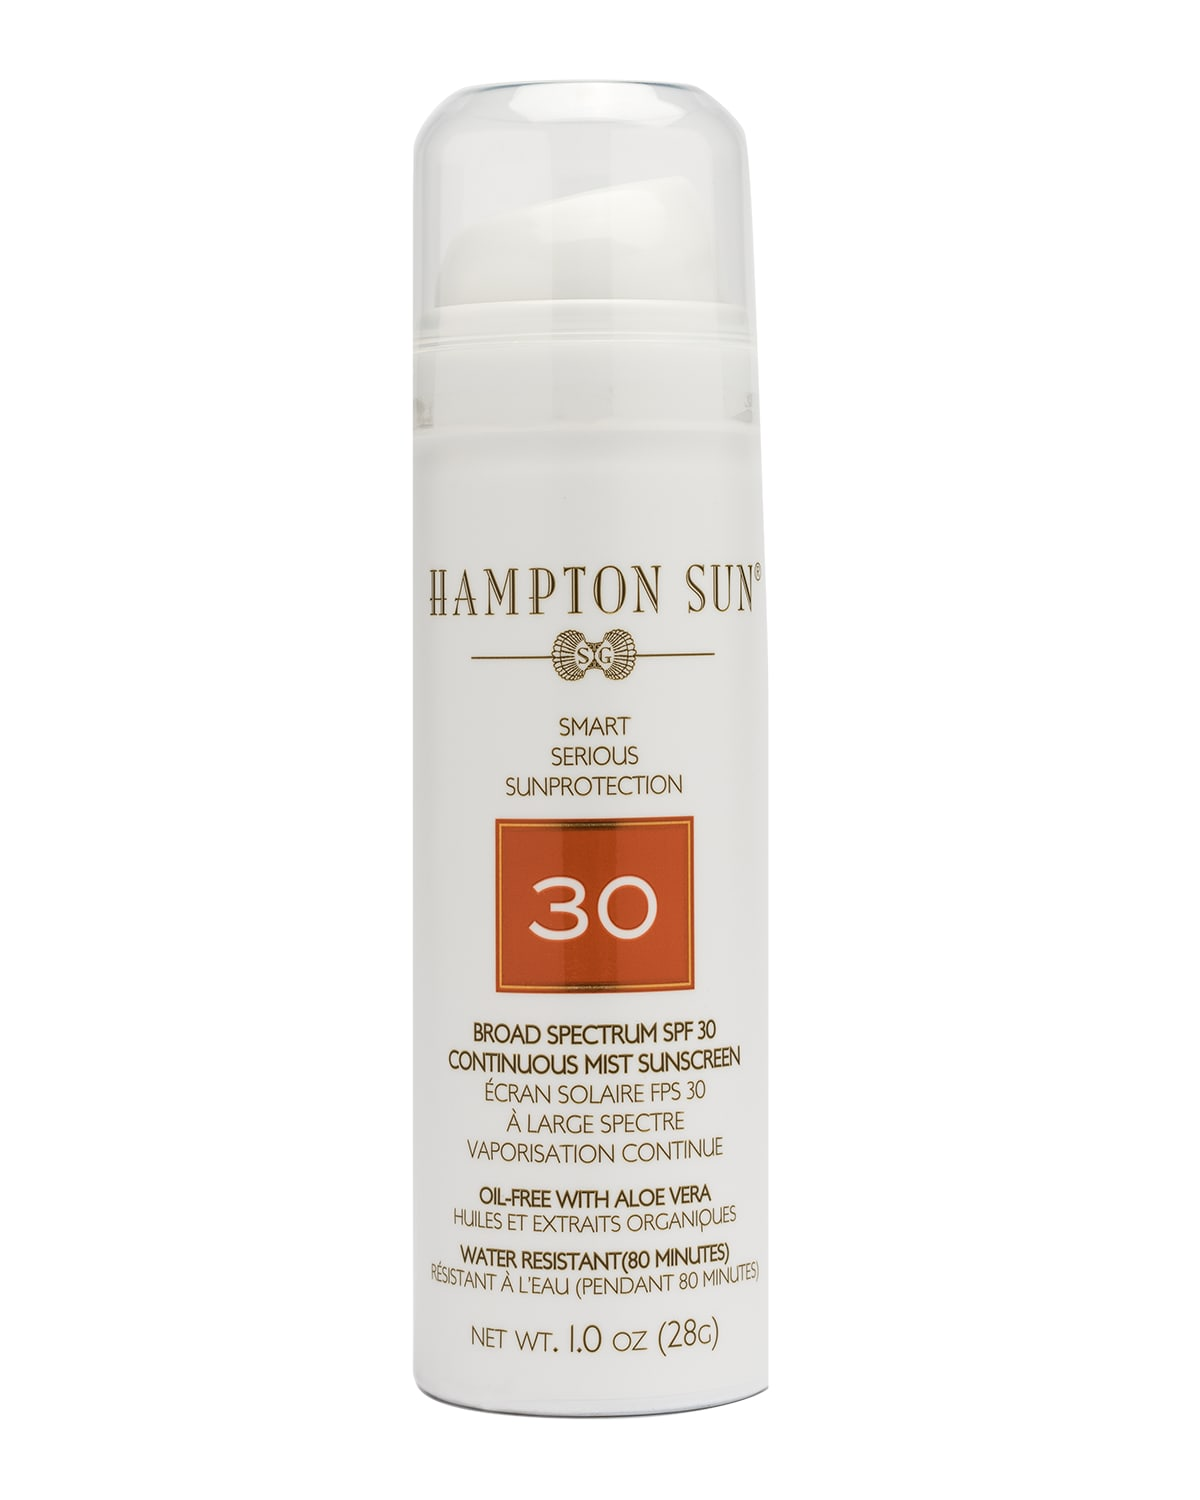 1 oz. SPF 30 Continuous Mist Sunscreen (Travel Size)